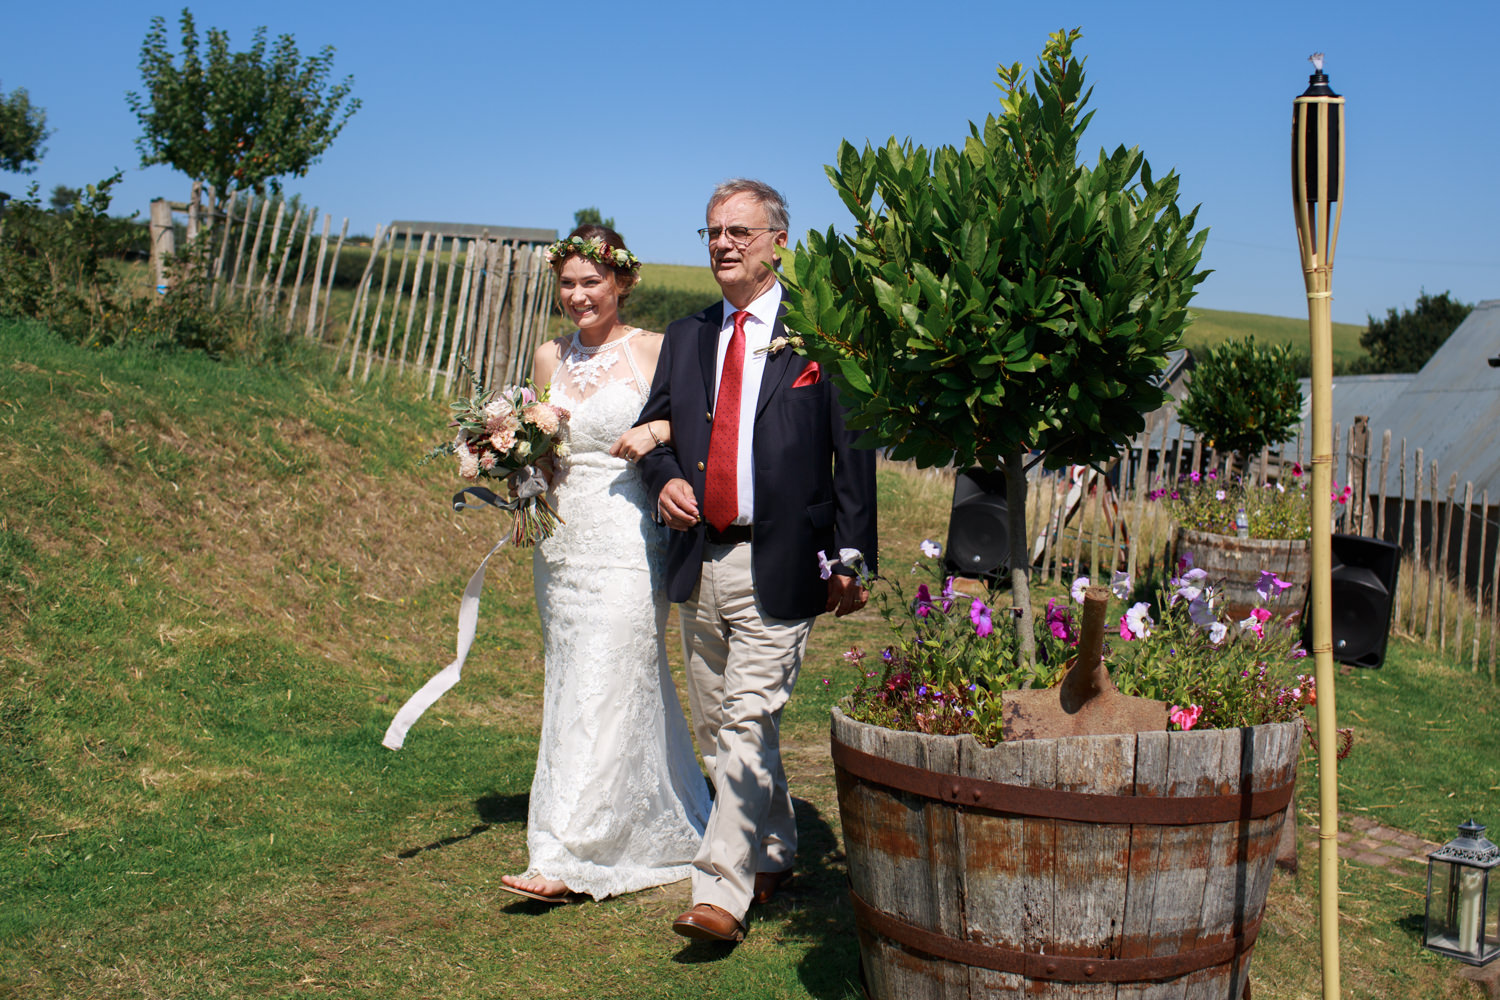 Windout Barn Farm Wedding Photographs 018_.jpg